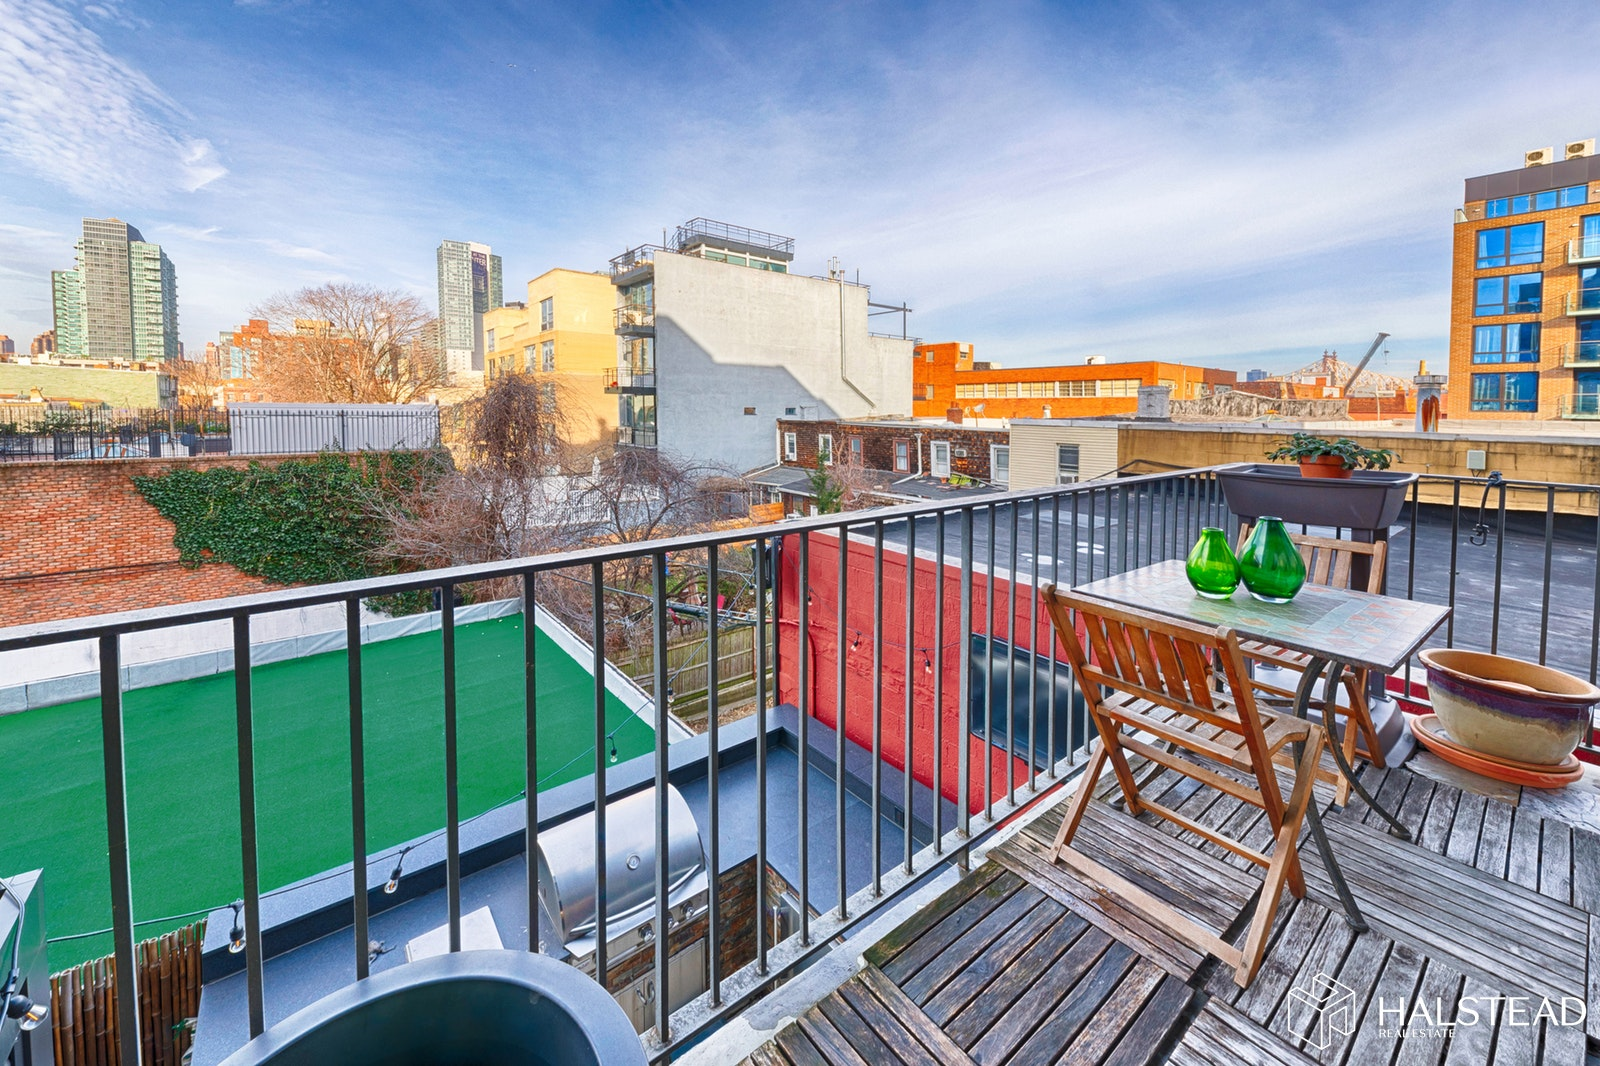 Large One Bed With Home Office & Terrace, Long Island City, Queens, NY, 11101, $1,120,000, Property For Sale, Halstead Real Estate, Photo 6